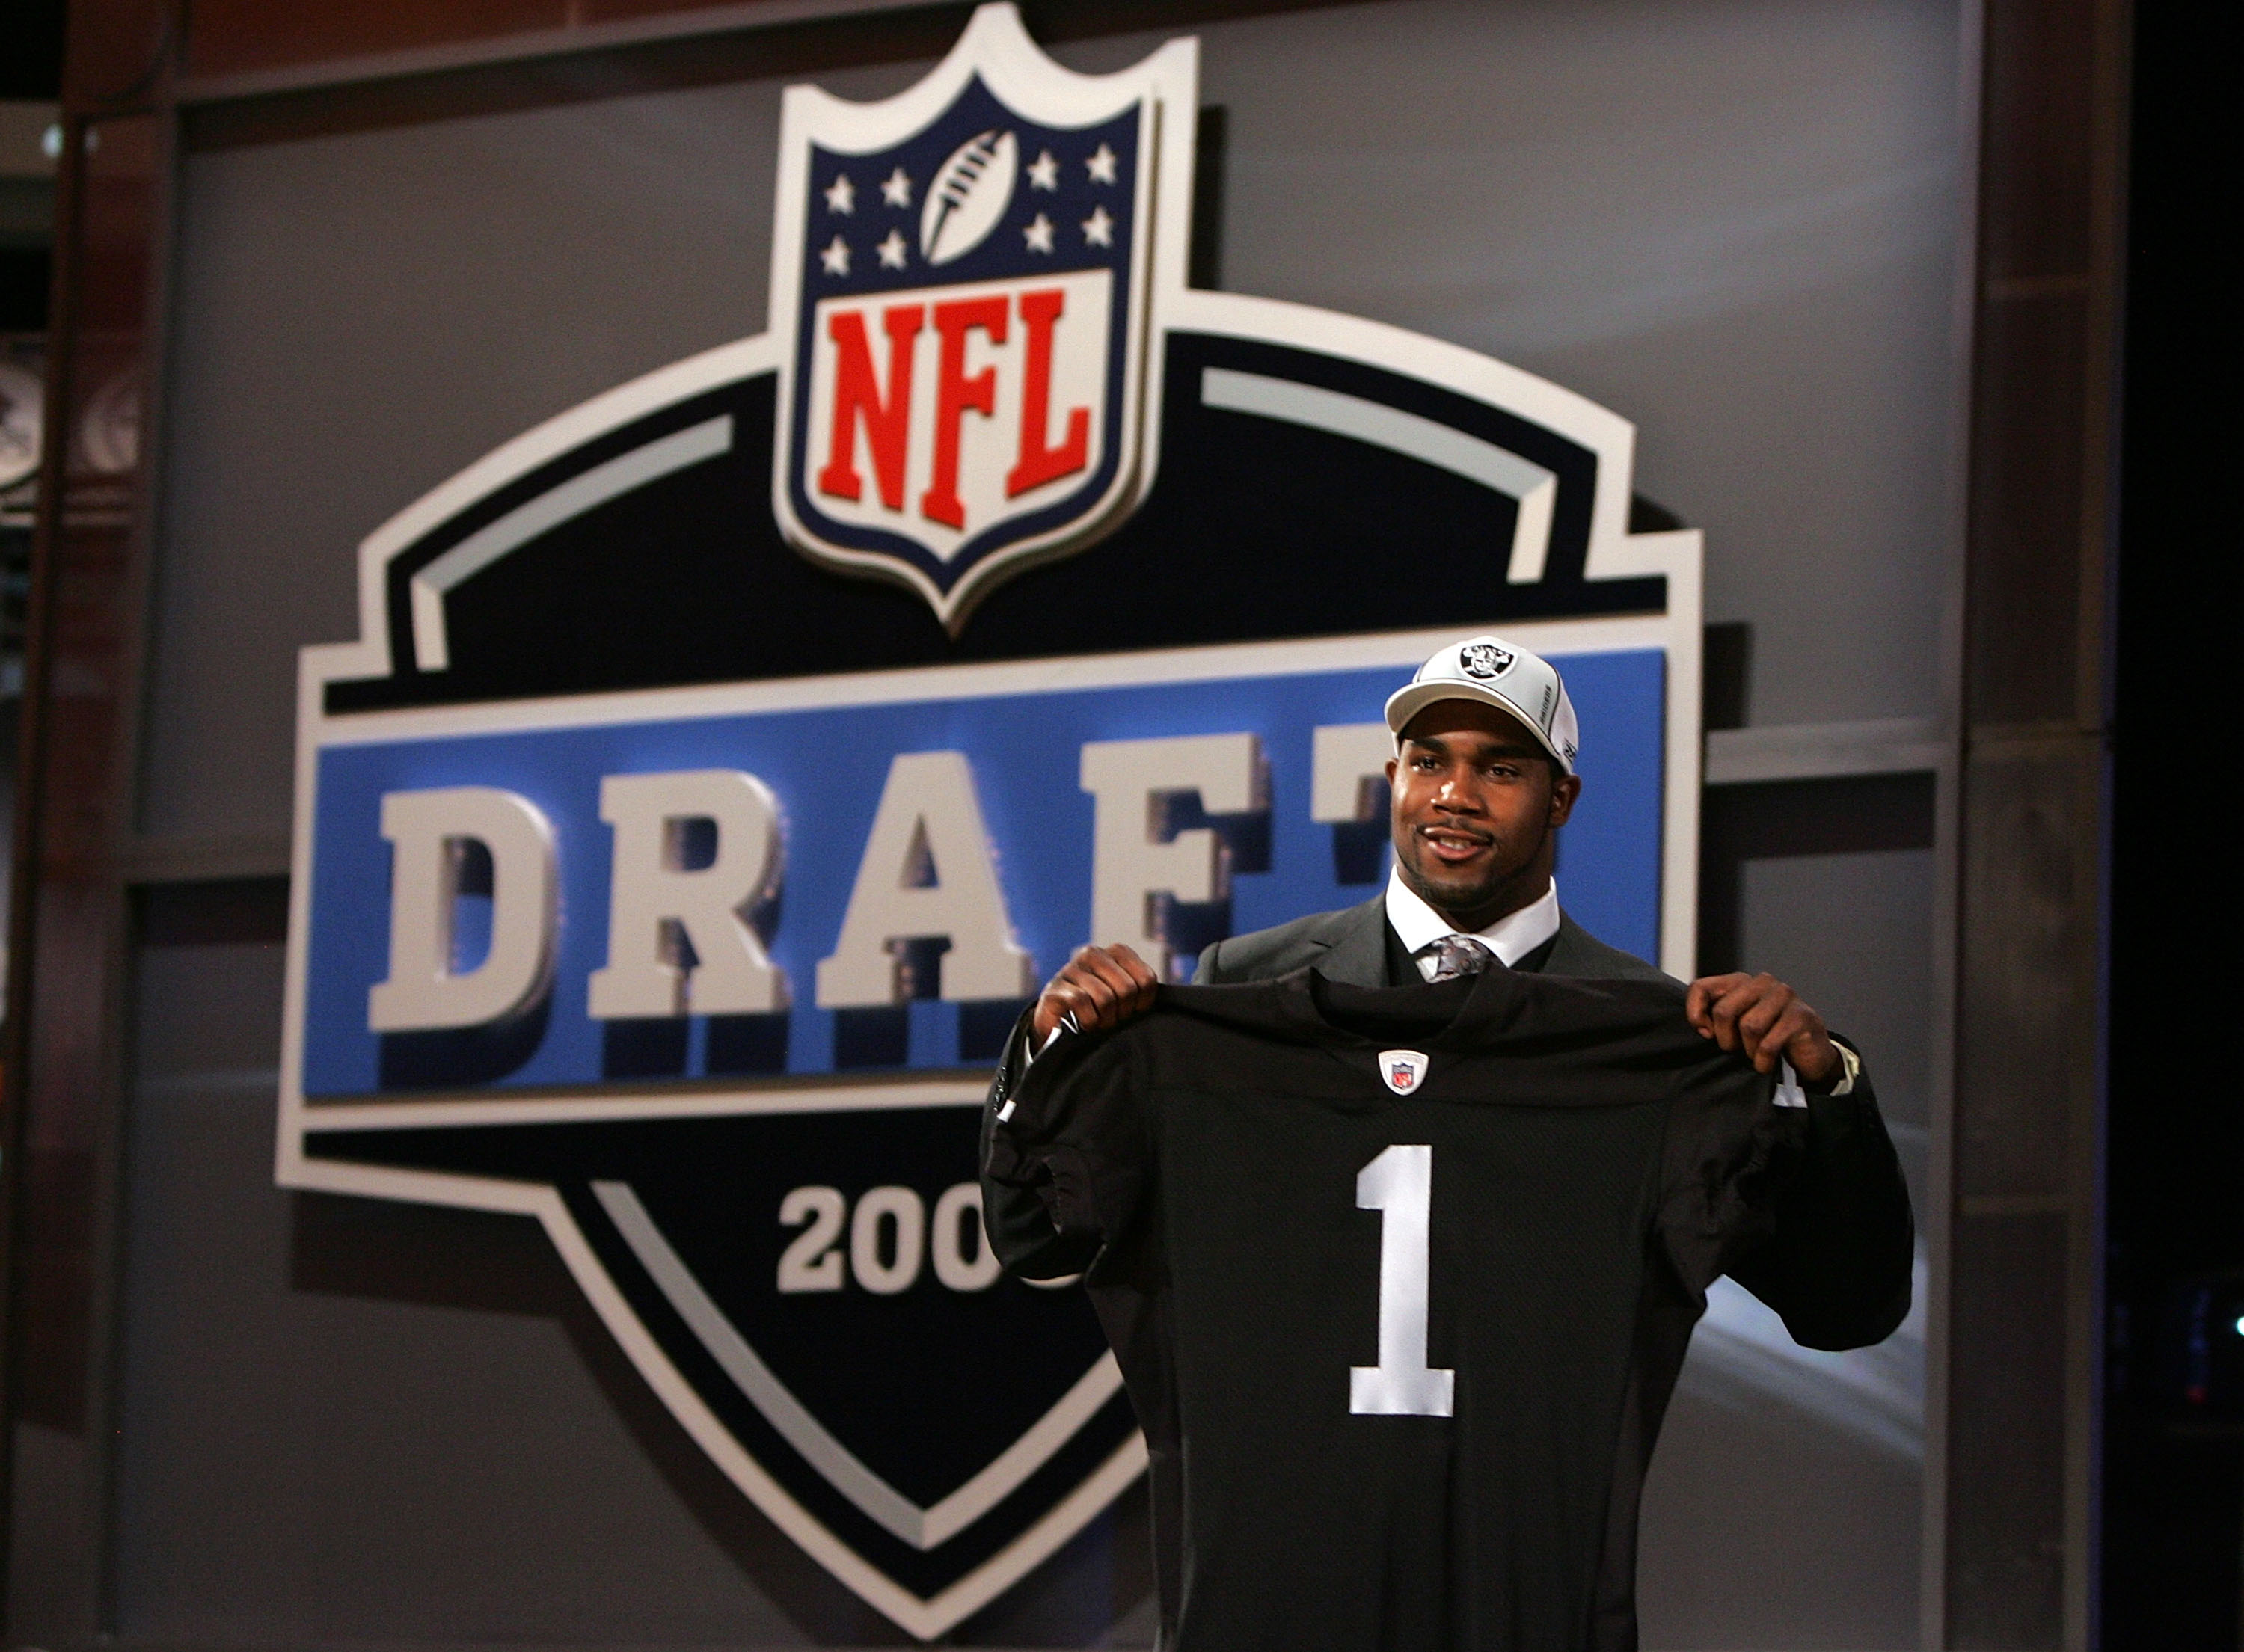 NEW YORK - APRIL 26:  Darren McFadden poses for a photo after being selected fourth overall by the Oakland Raiders during the 2008 NFL Draft on April 26, 2008 at Radio City Music Hall in New York, New York.  (Photo by Jim McIsaac/Getty Images)